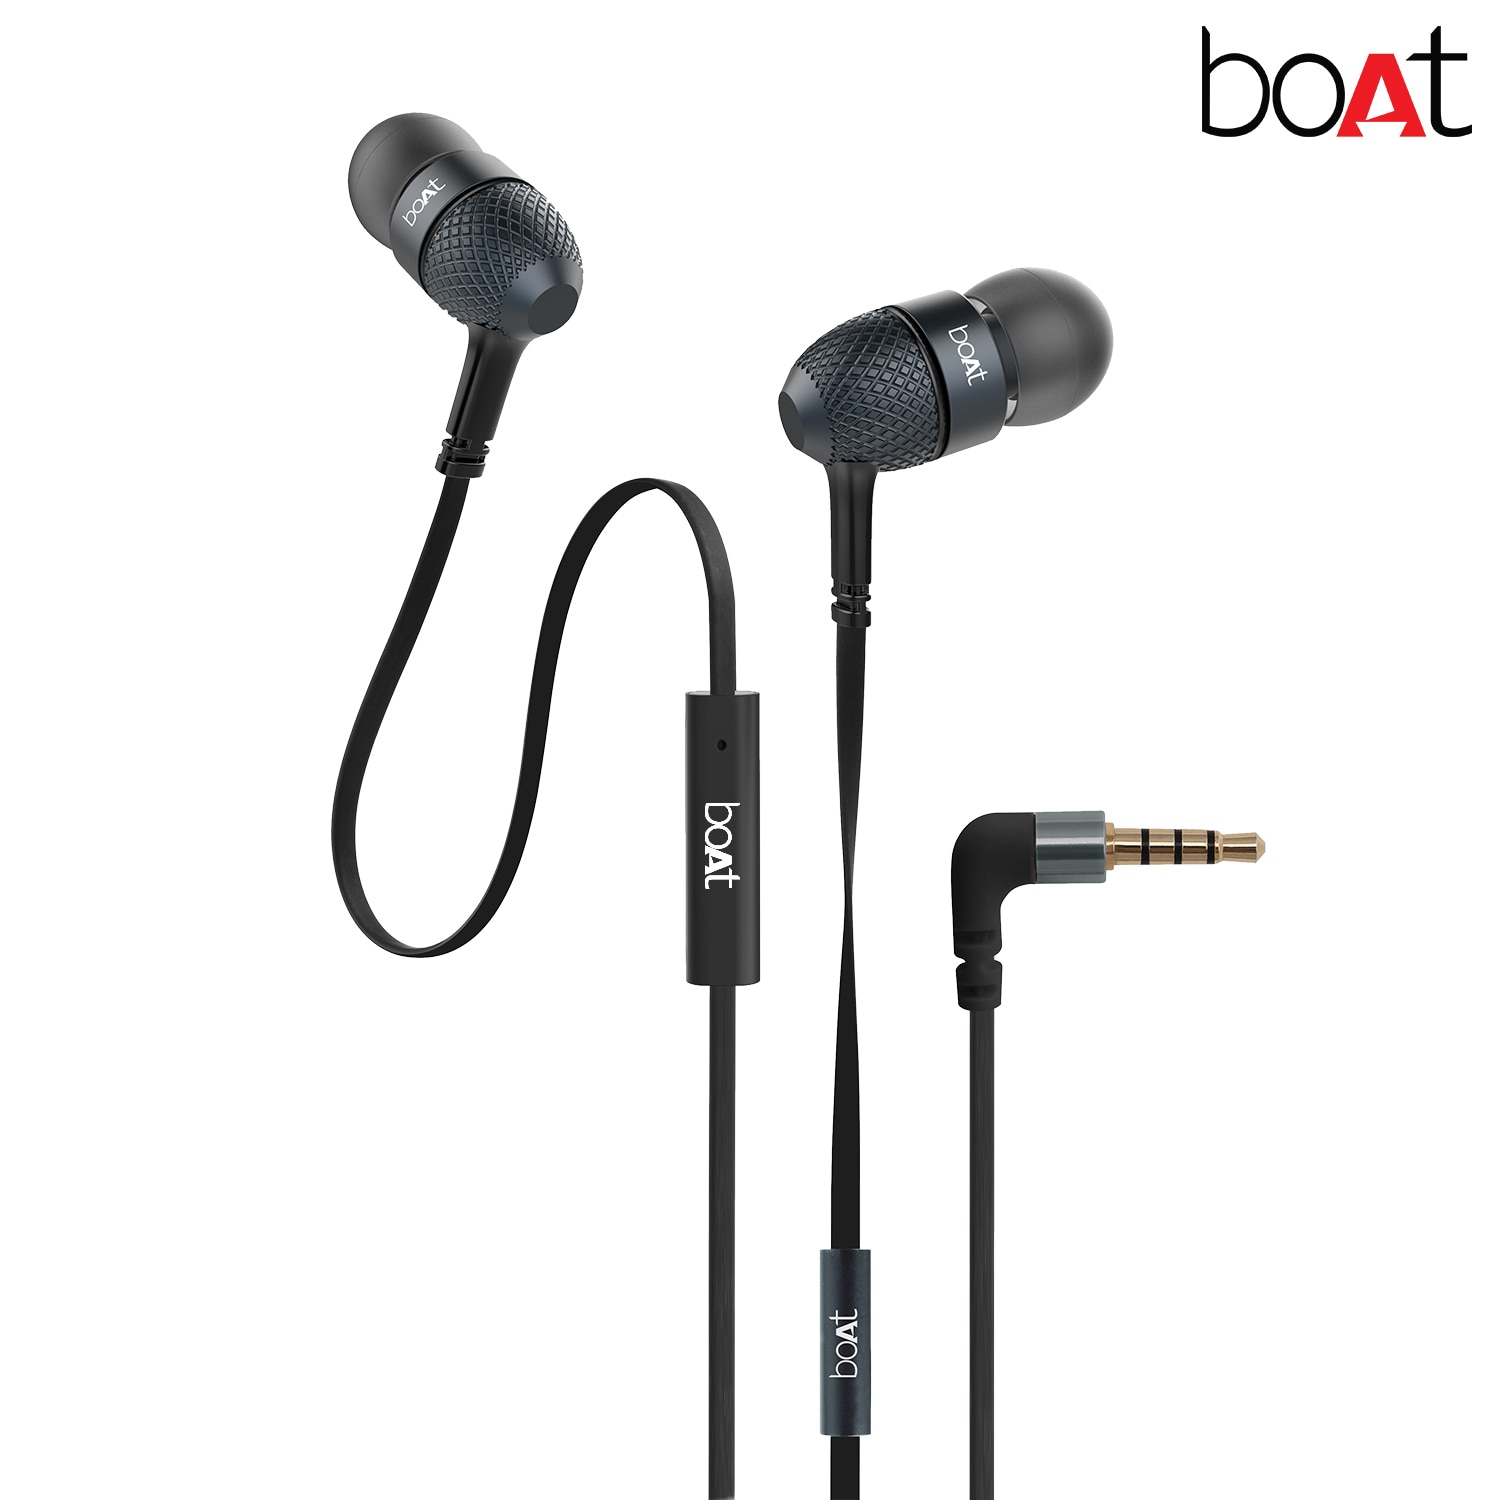 Boat Bassheads 225 In-Ear Super Extra Bass Headphones With One Button Mic (Black)